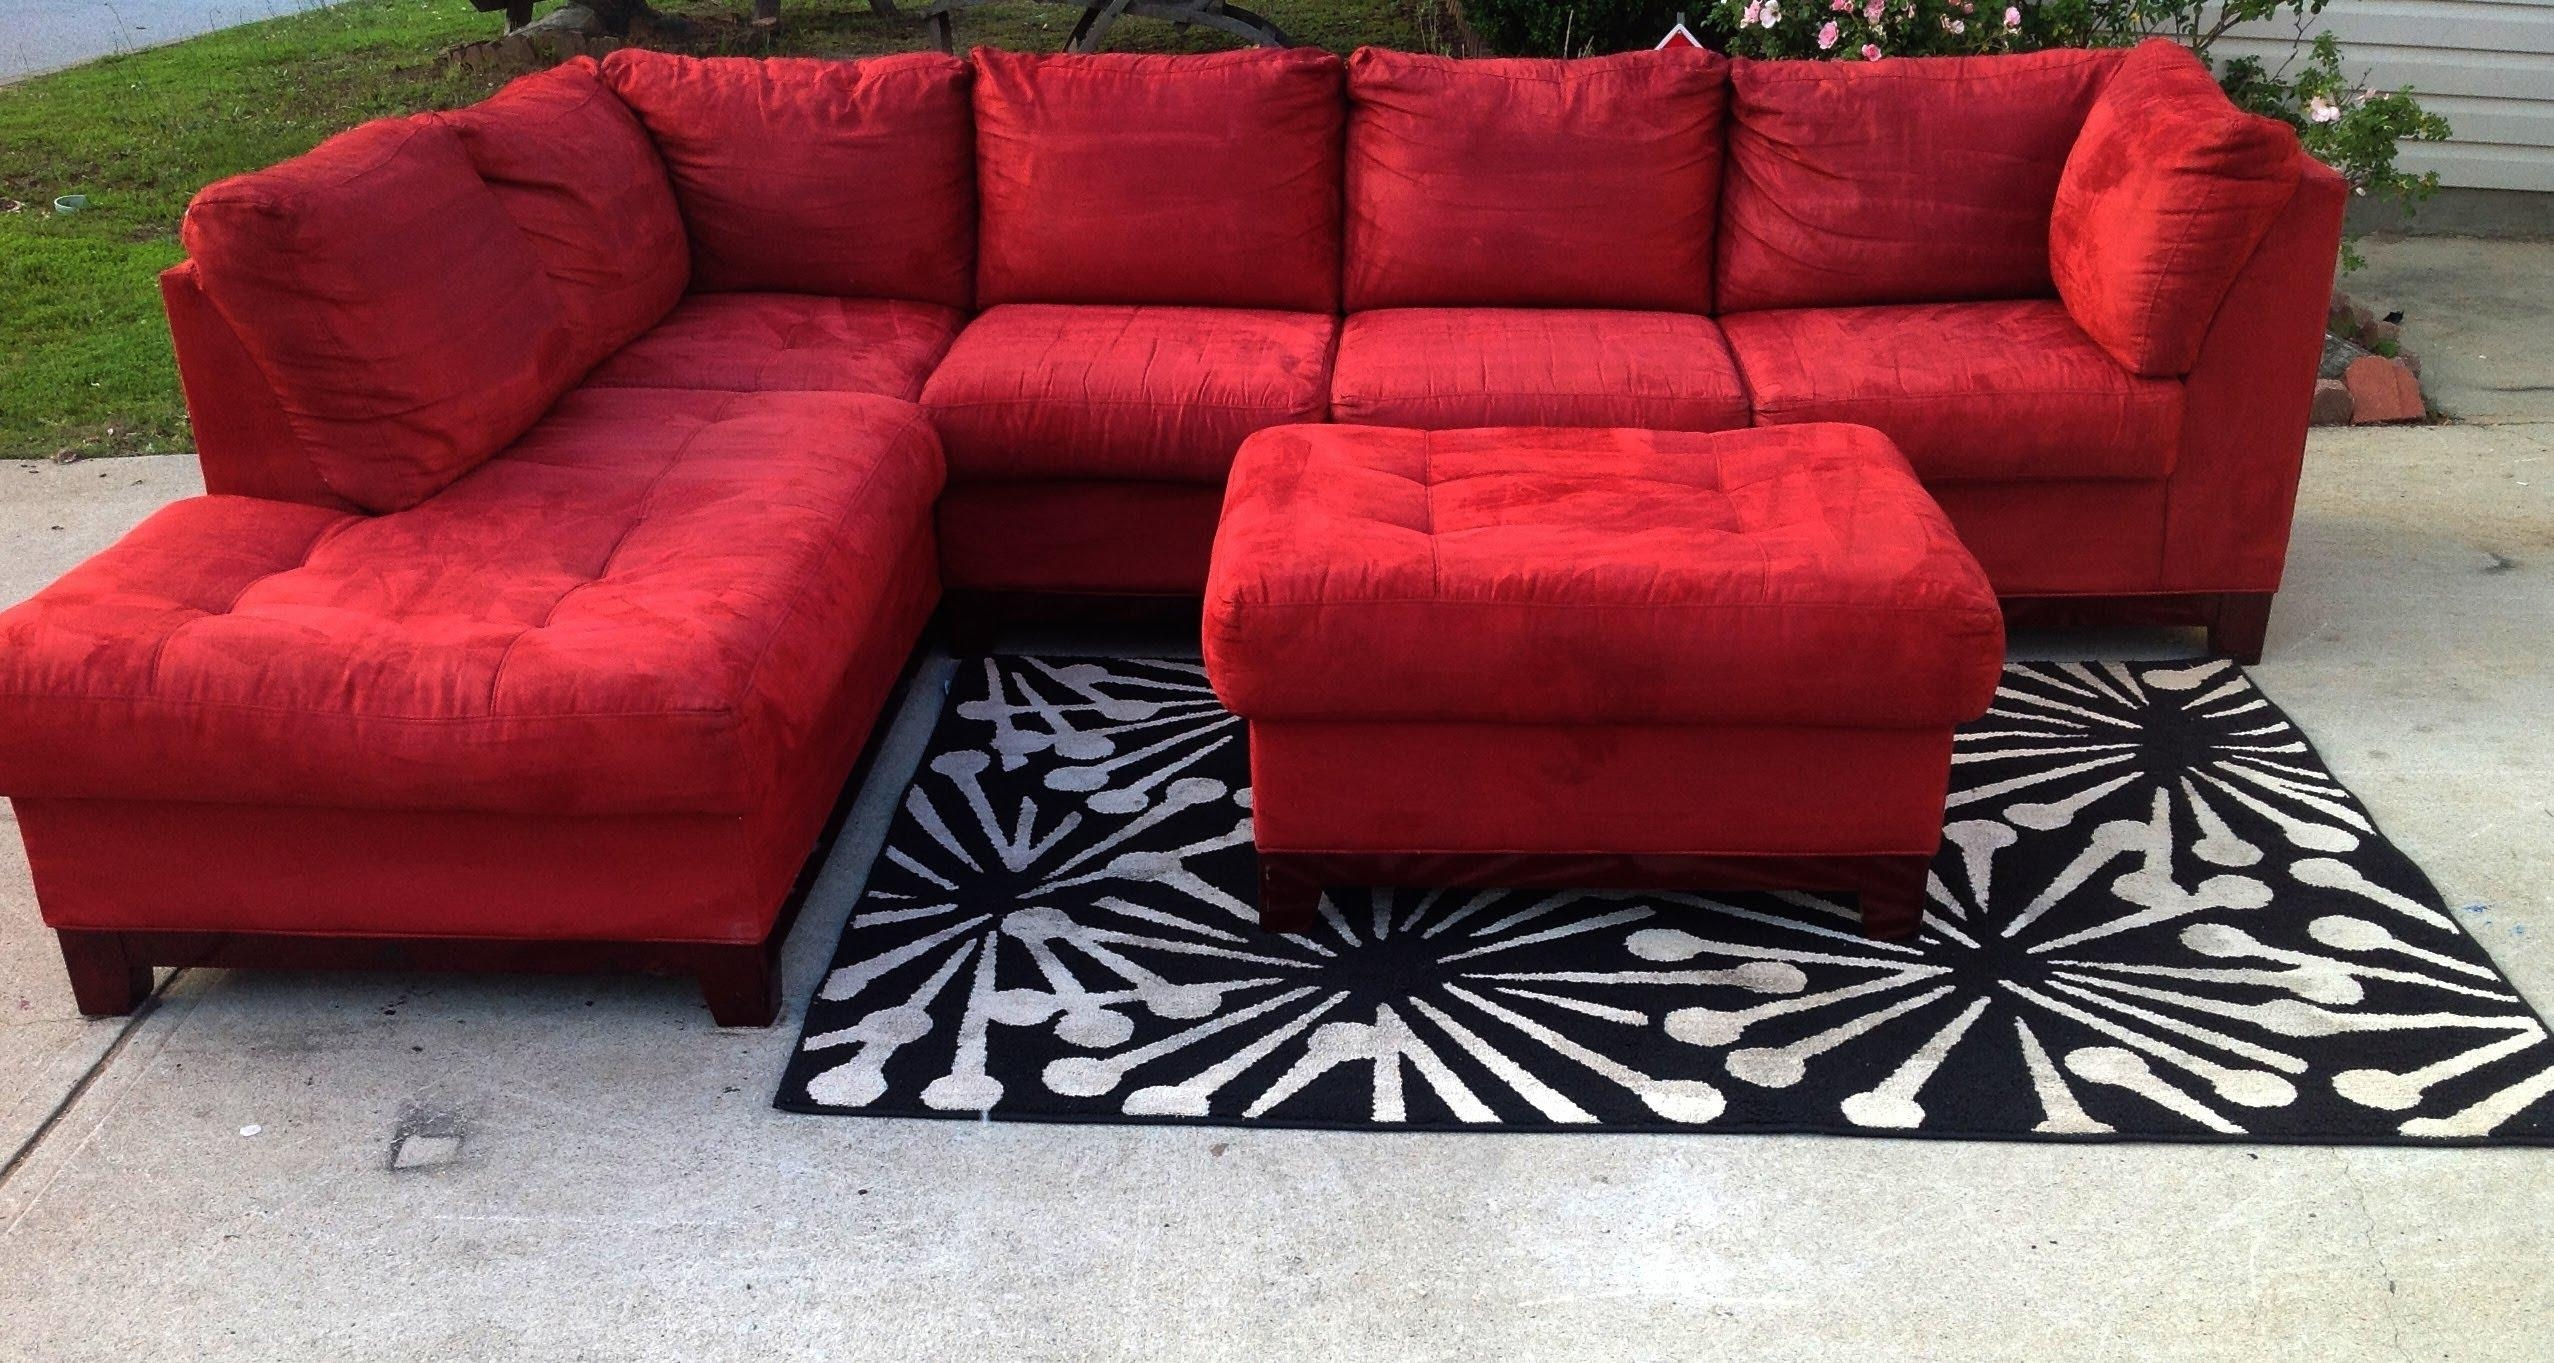 Cindy Crawford Sofa Within Cindy Crawford Microfiber Sofas (View 7 of 20)